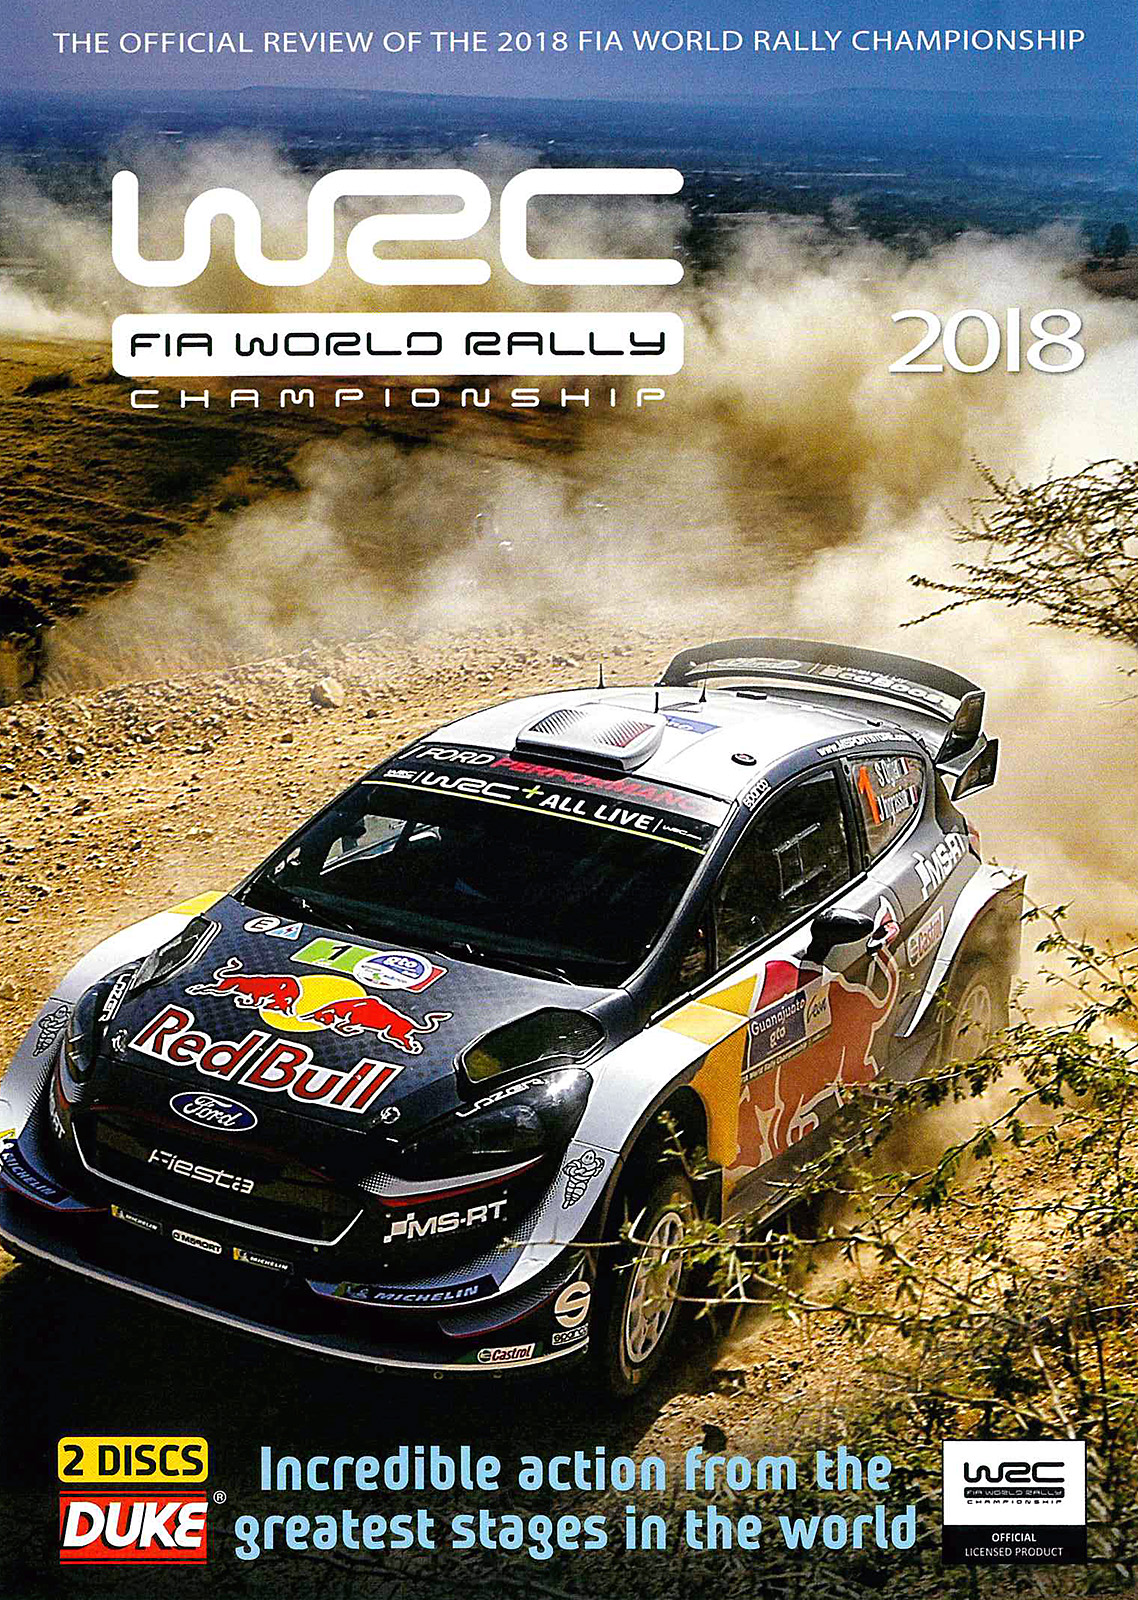 wrc fia world rally championship review 2018 dvd blu rays dvds rallywebshop. Black Bedroom Furniture Sets. Home Design Ideas